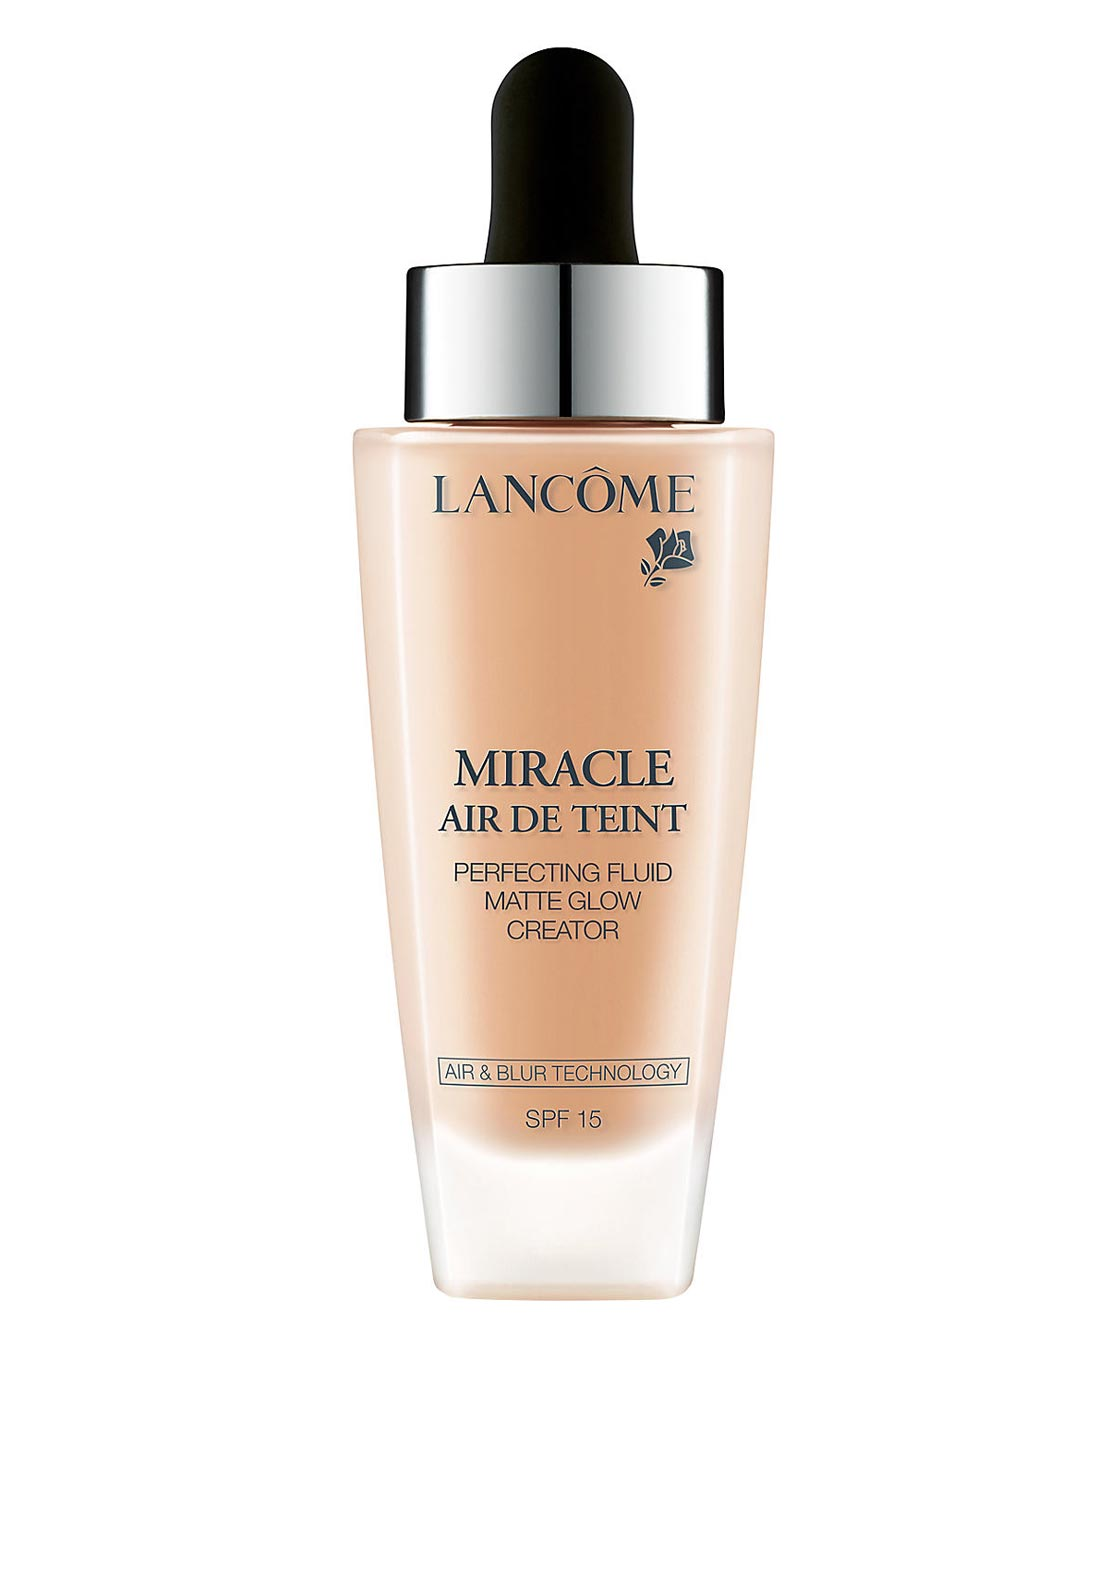 Lancome Miracle Air De Teint Perfecting Fluid, 045 Sable Beige